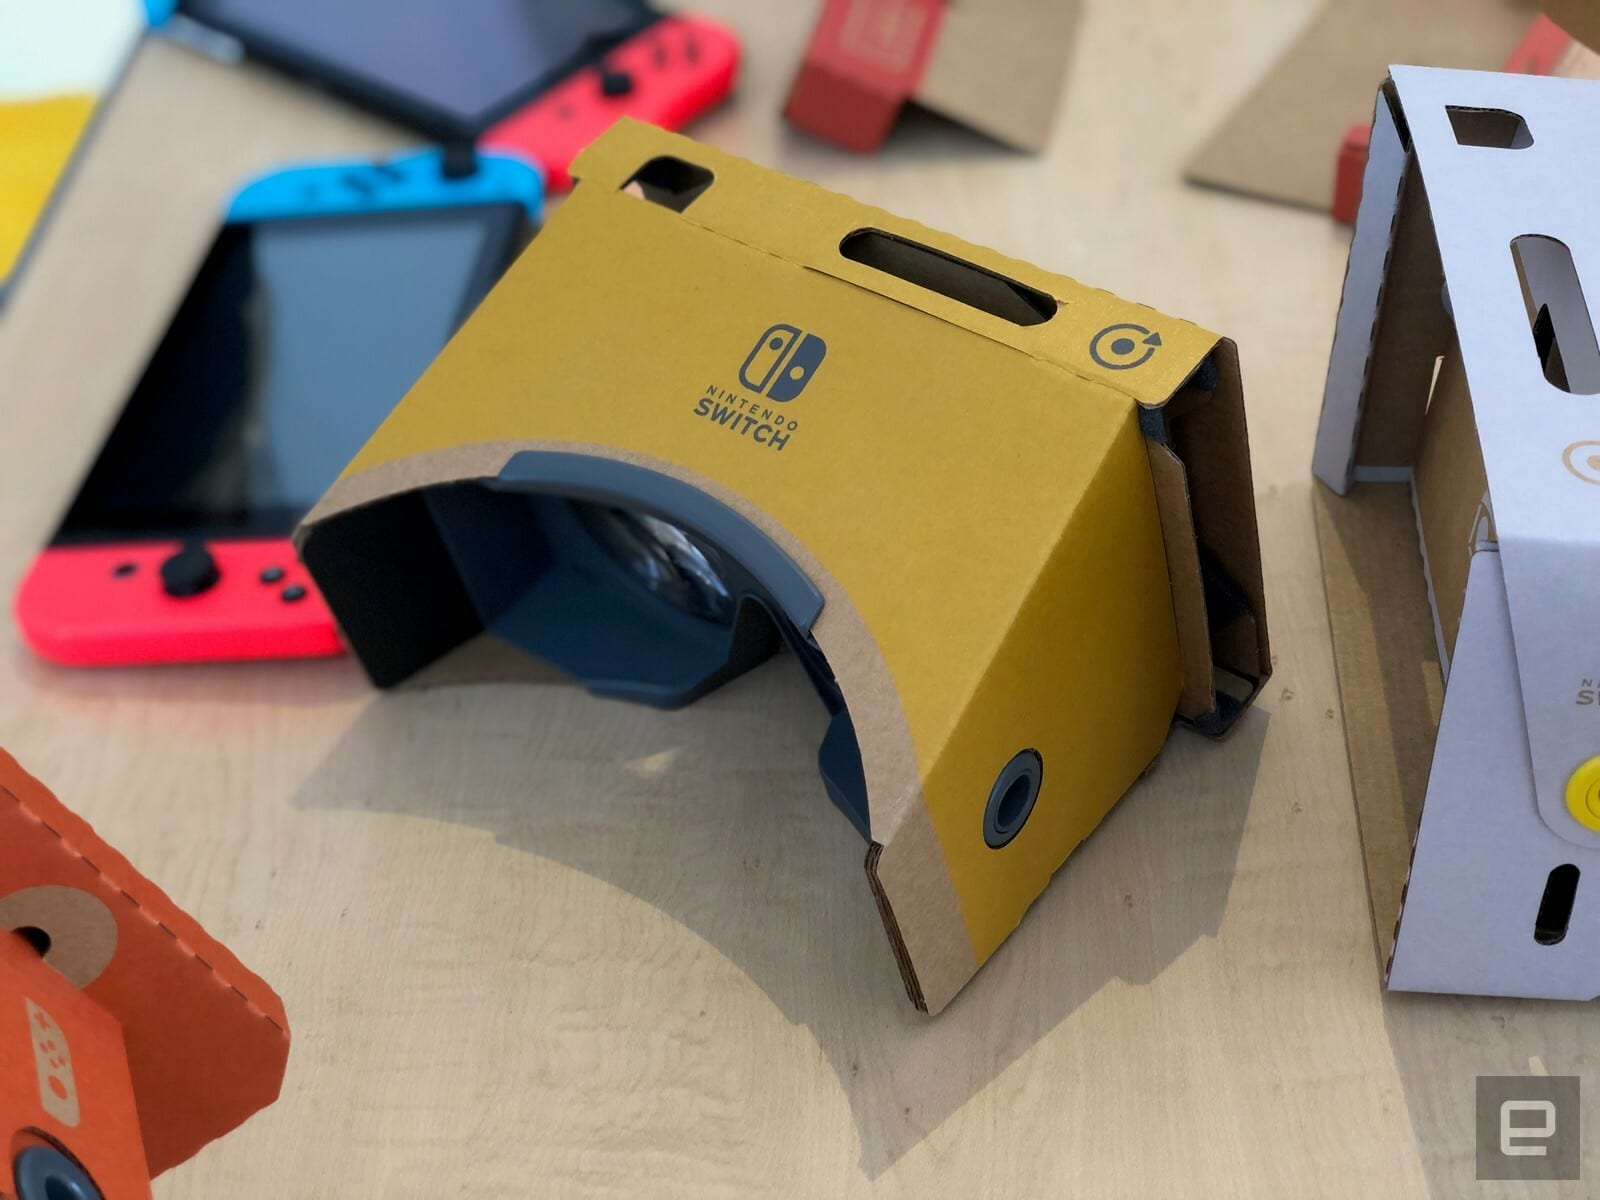 Nintendo Labo VR Kit for Switch